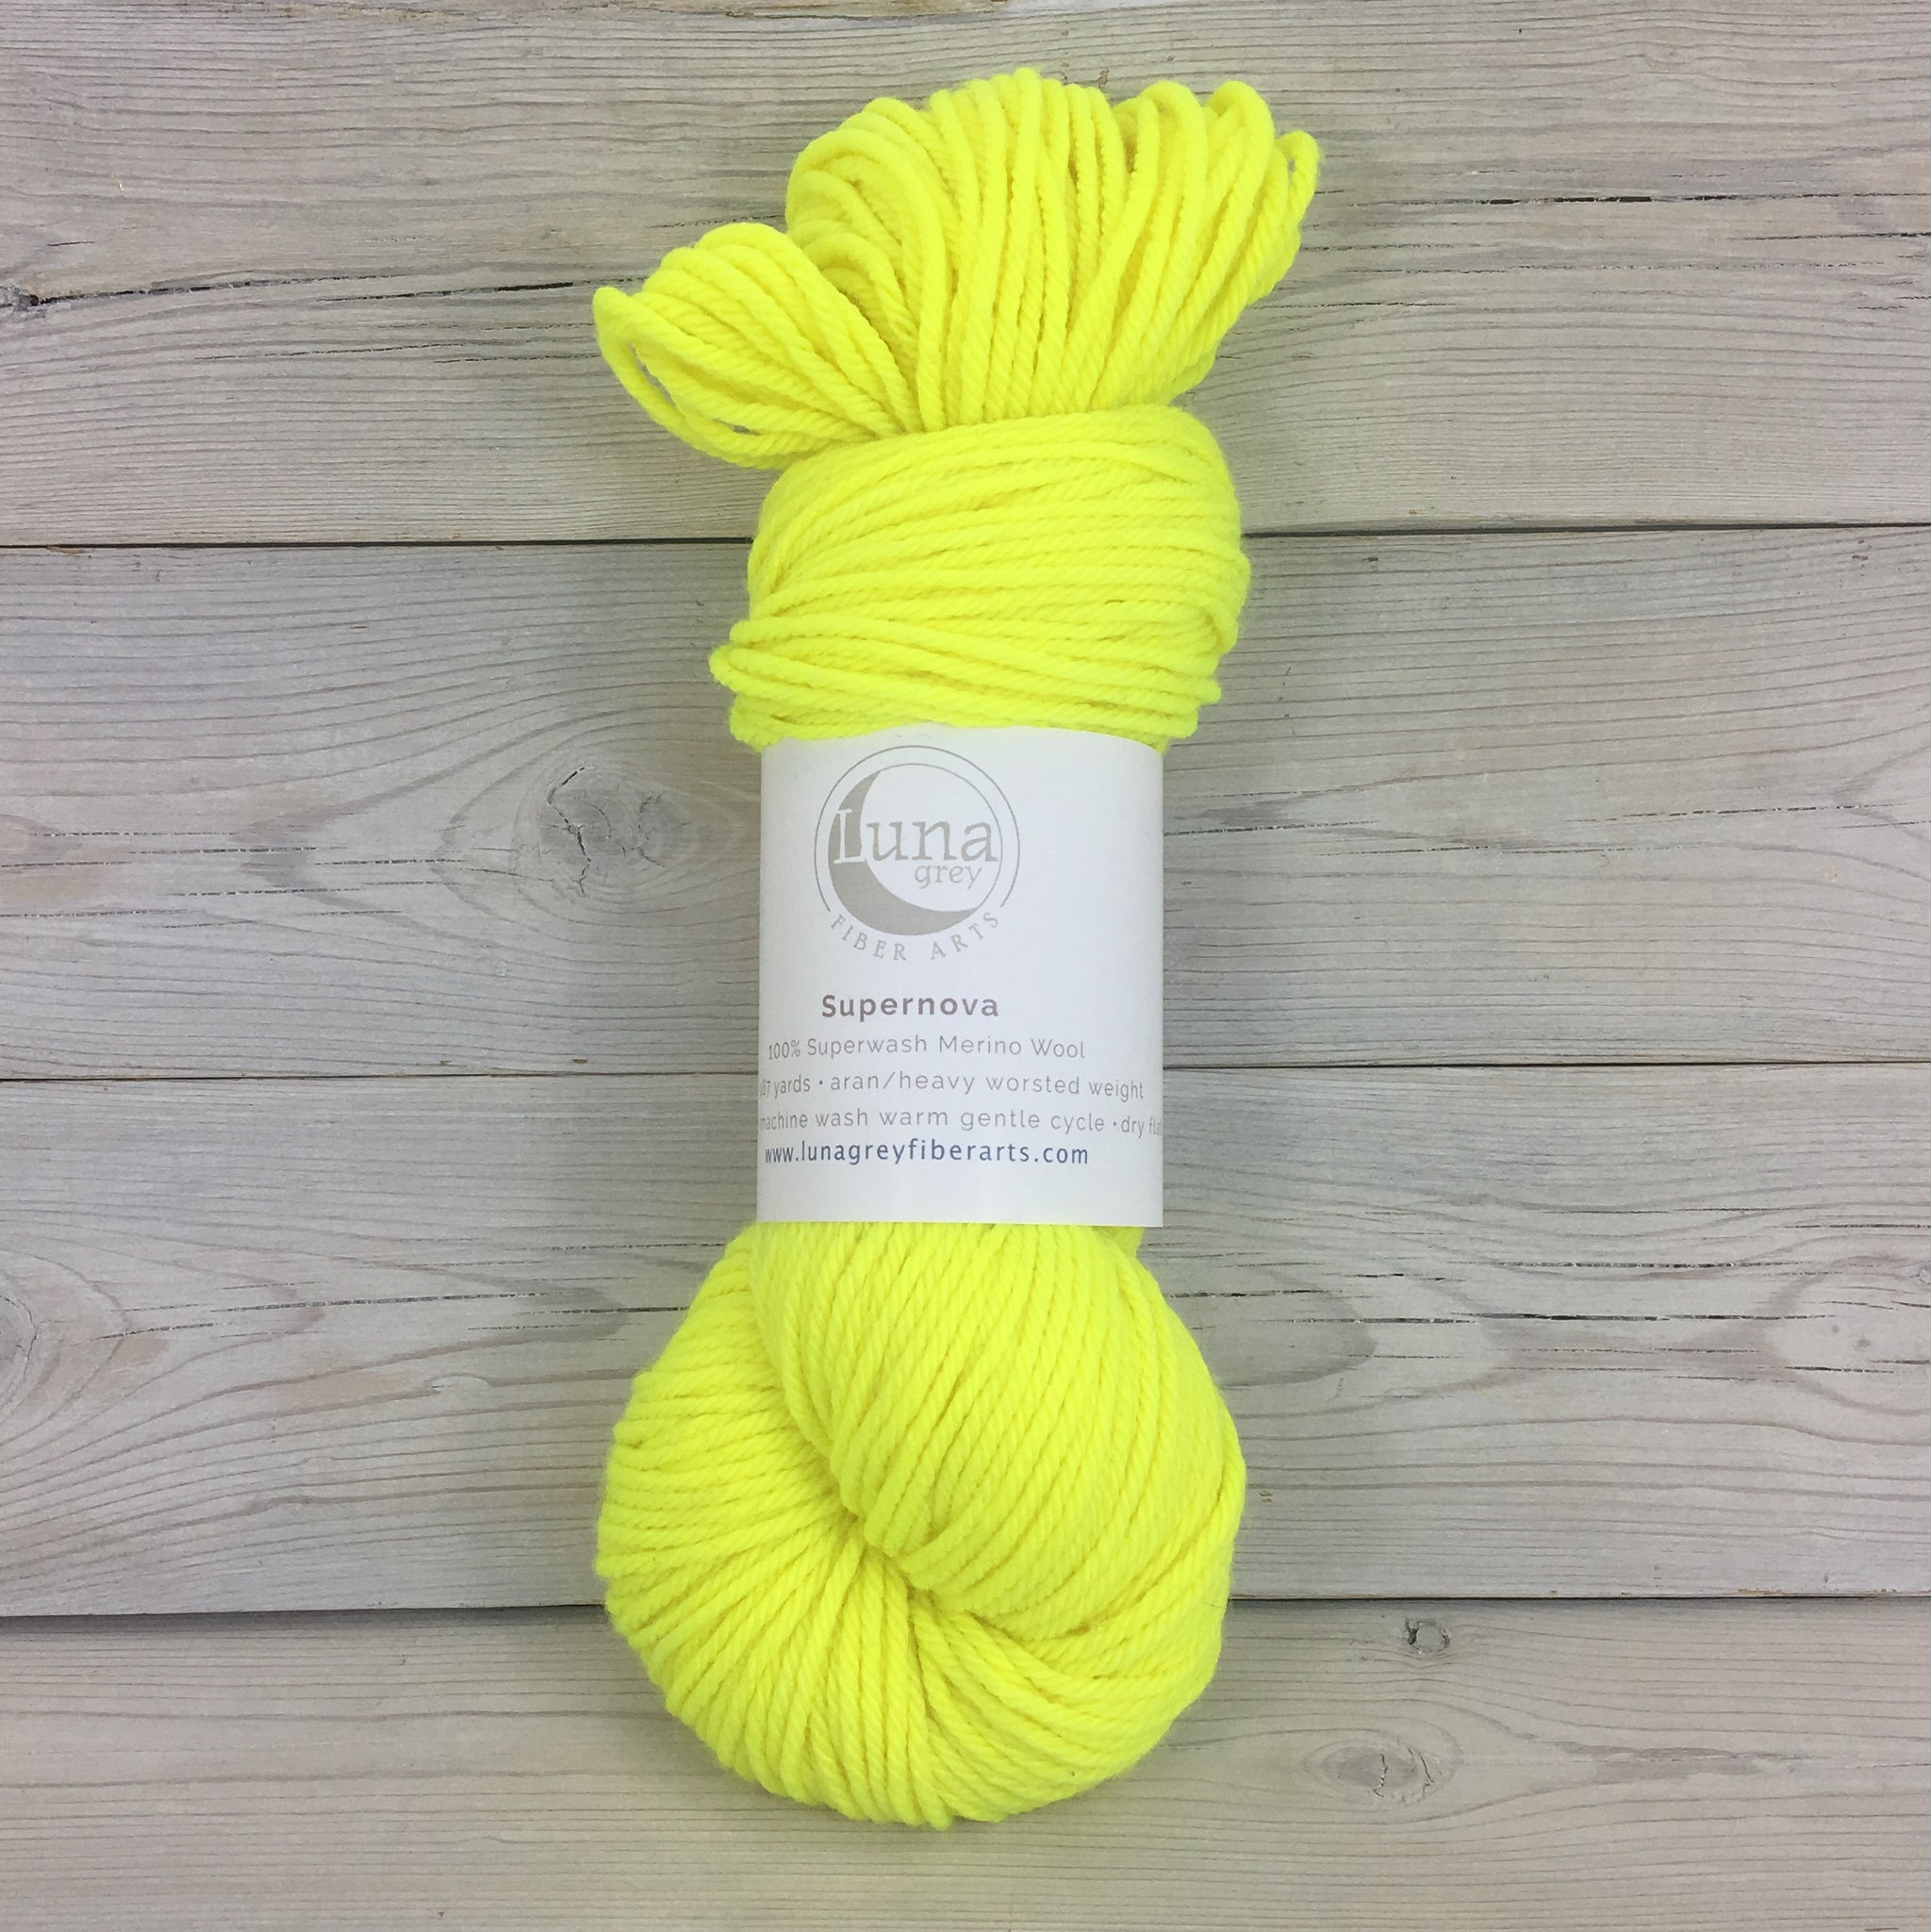 Supernova Yarn | Colorway: Neon Yellow